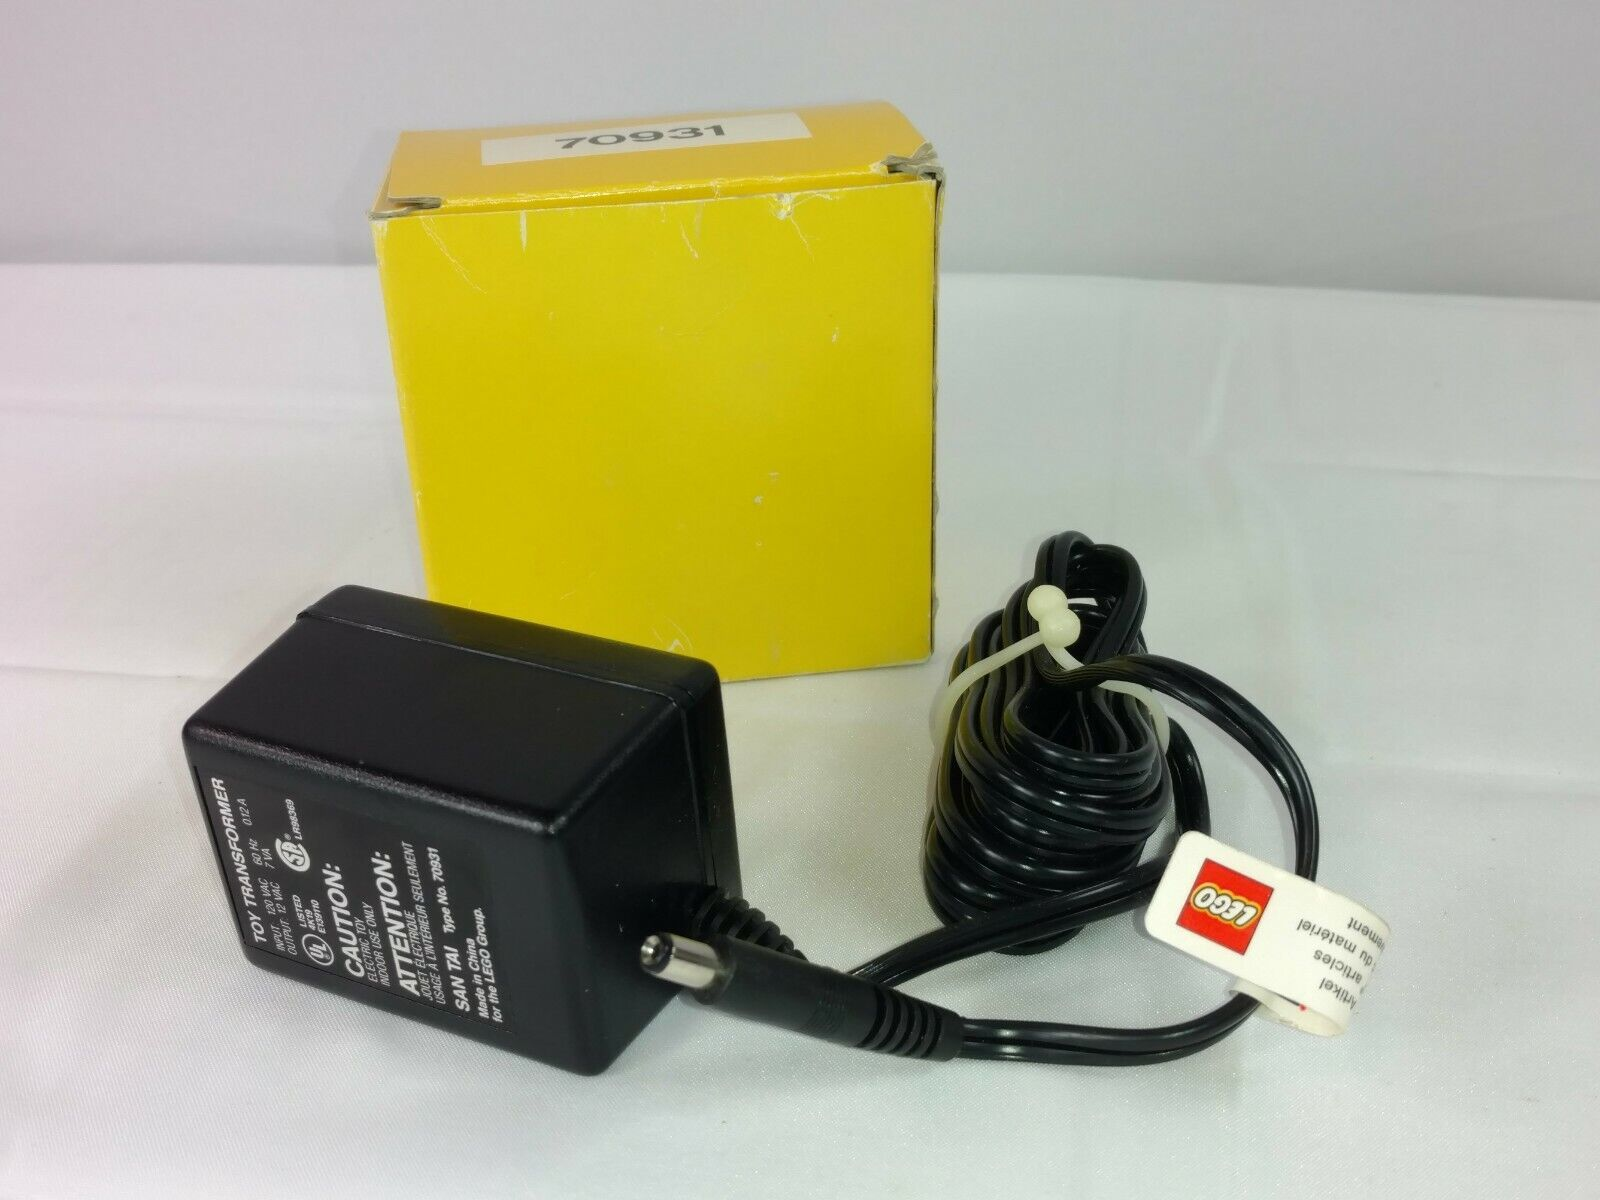 Lego Toy Transformer Power Supply With Box - Never Used - AC Adapter